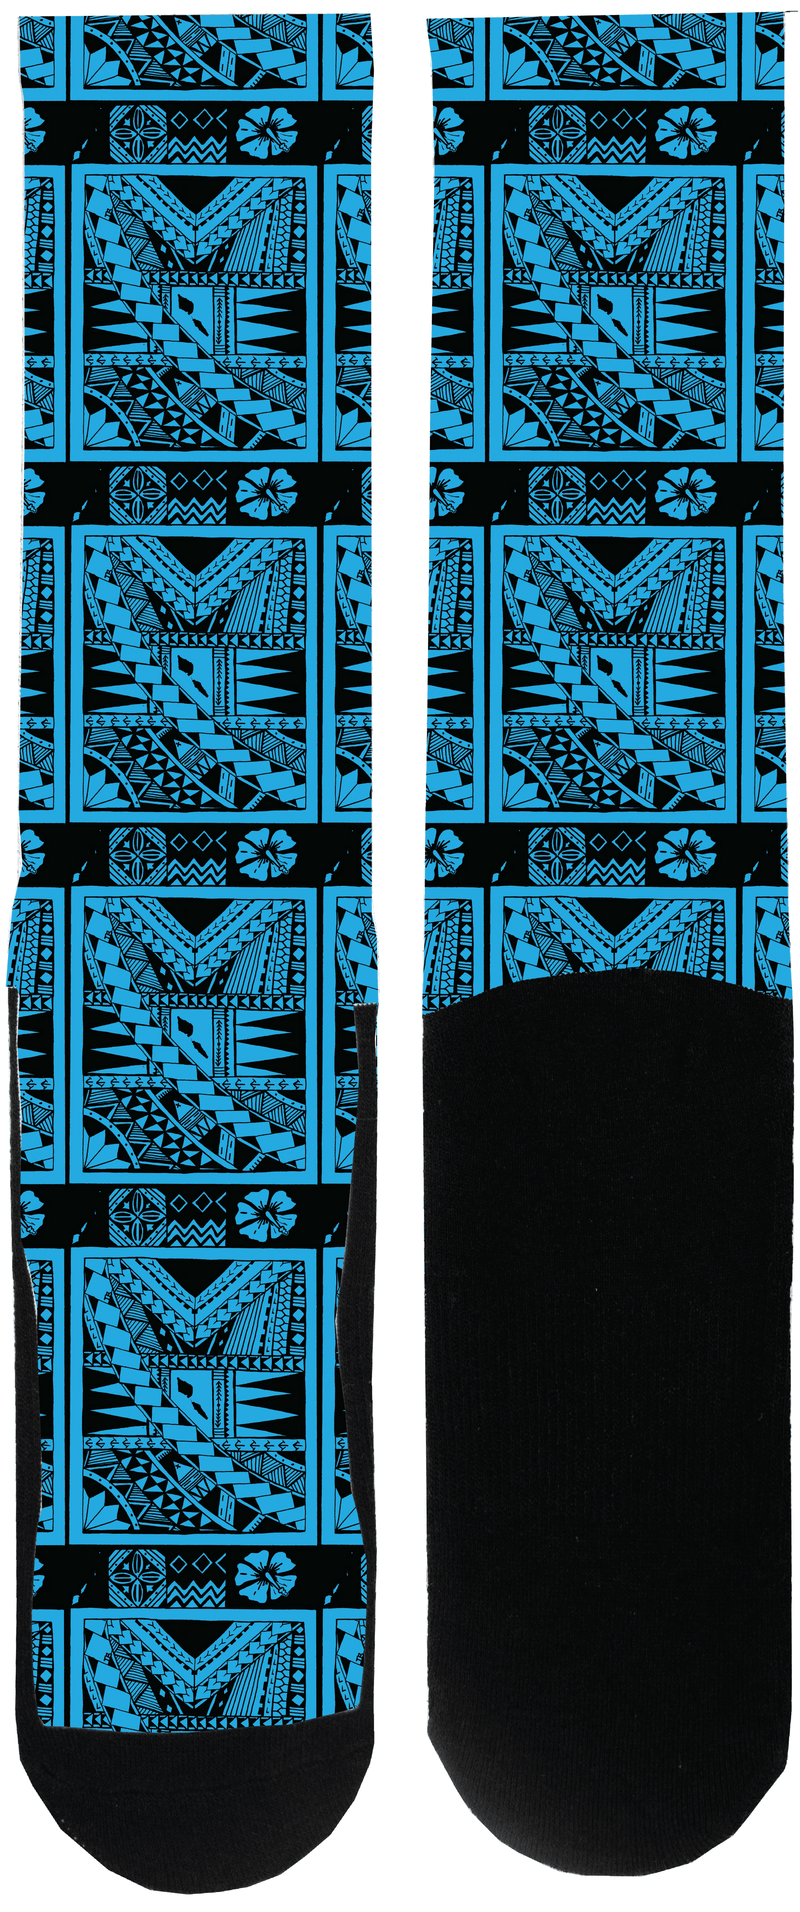 Samoa Sock - Limited Edition - Tough Tie